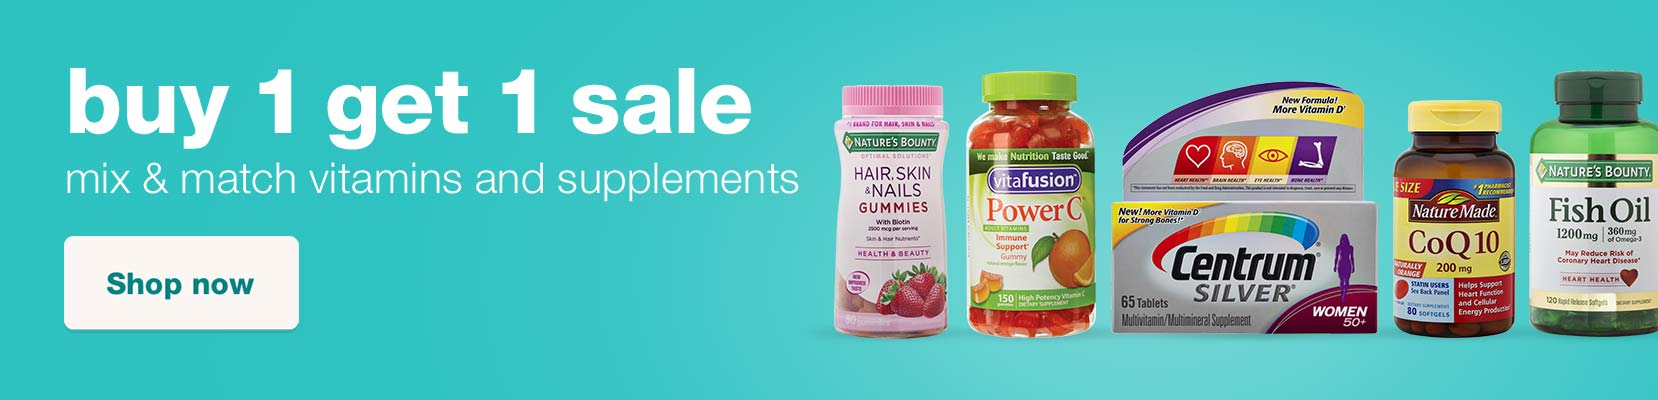 Buy 1 get 1 sale. Mix & match vitamins and supplements. Shop now.